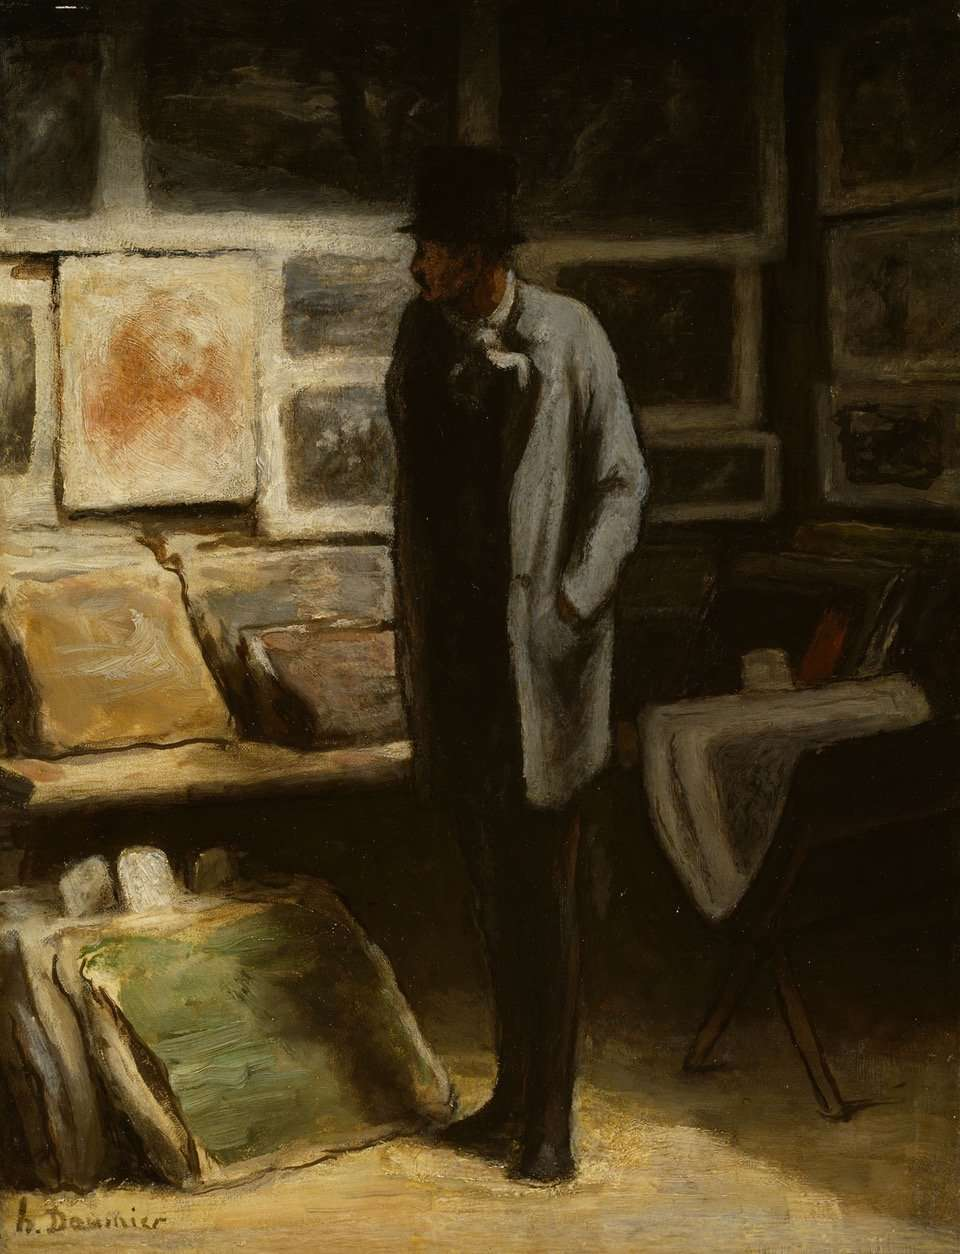 Honoré Daumier, The Print Collector, c. 1857/63, Art Institute of Chicago